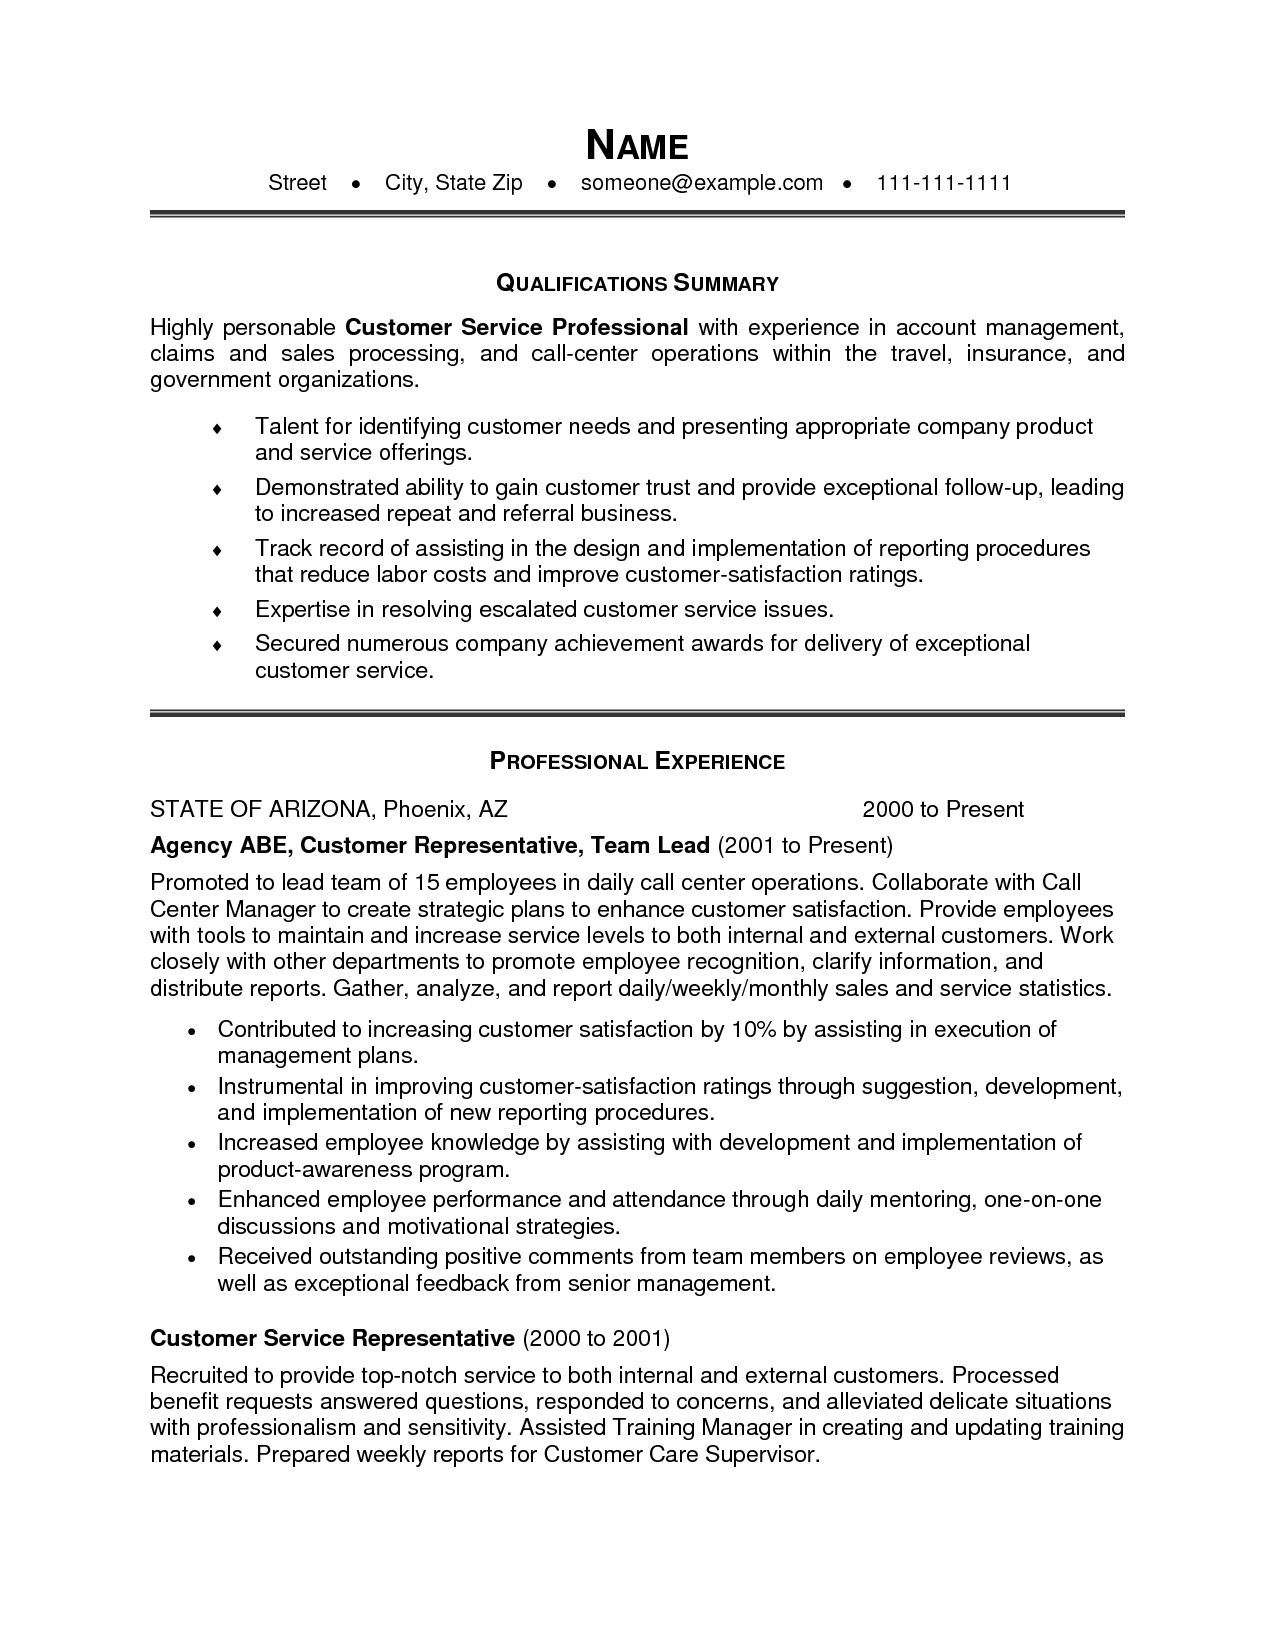 Customer Service Resume Summary Examples Resume Summary Examples - Customer-service-resume-objective